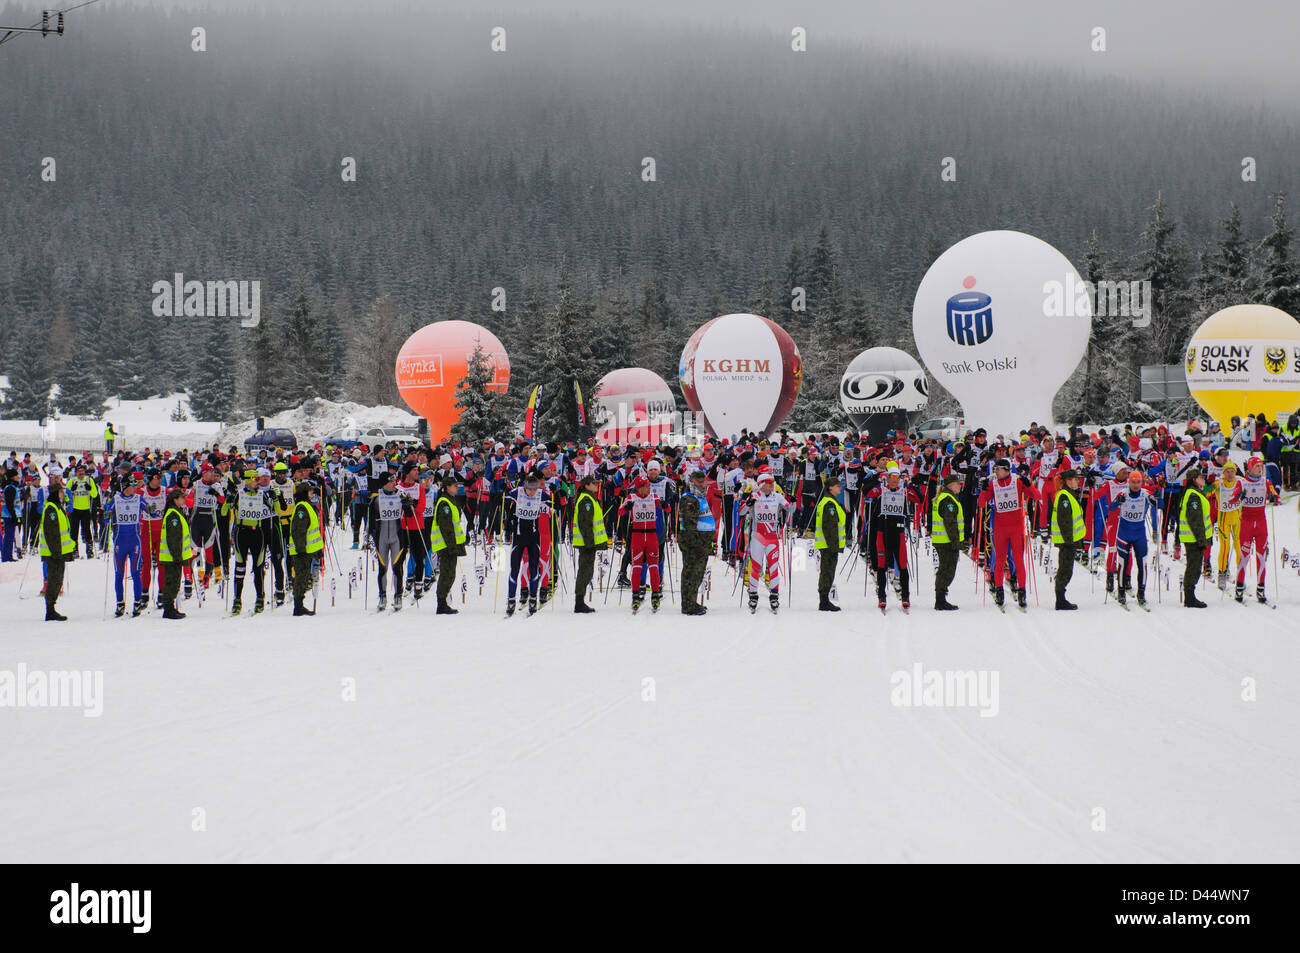 Participants of the free-style await for the start at the Bieg Piastow cross-country race, Jakuszyce, Poland. - Stock Image